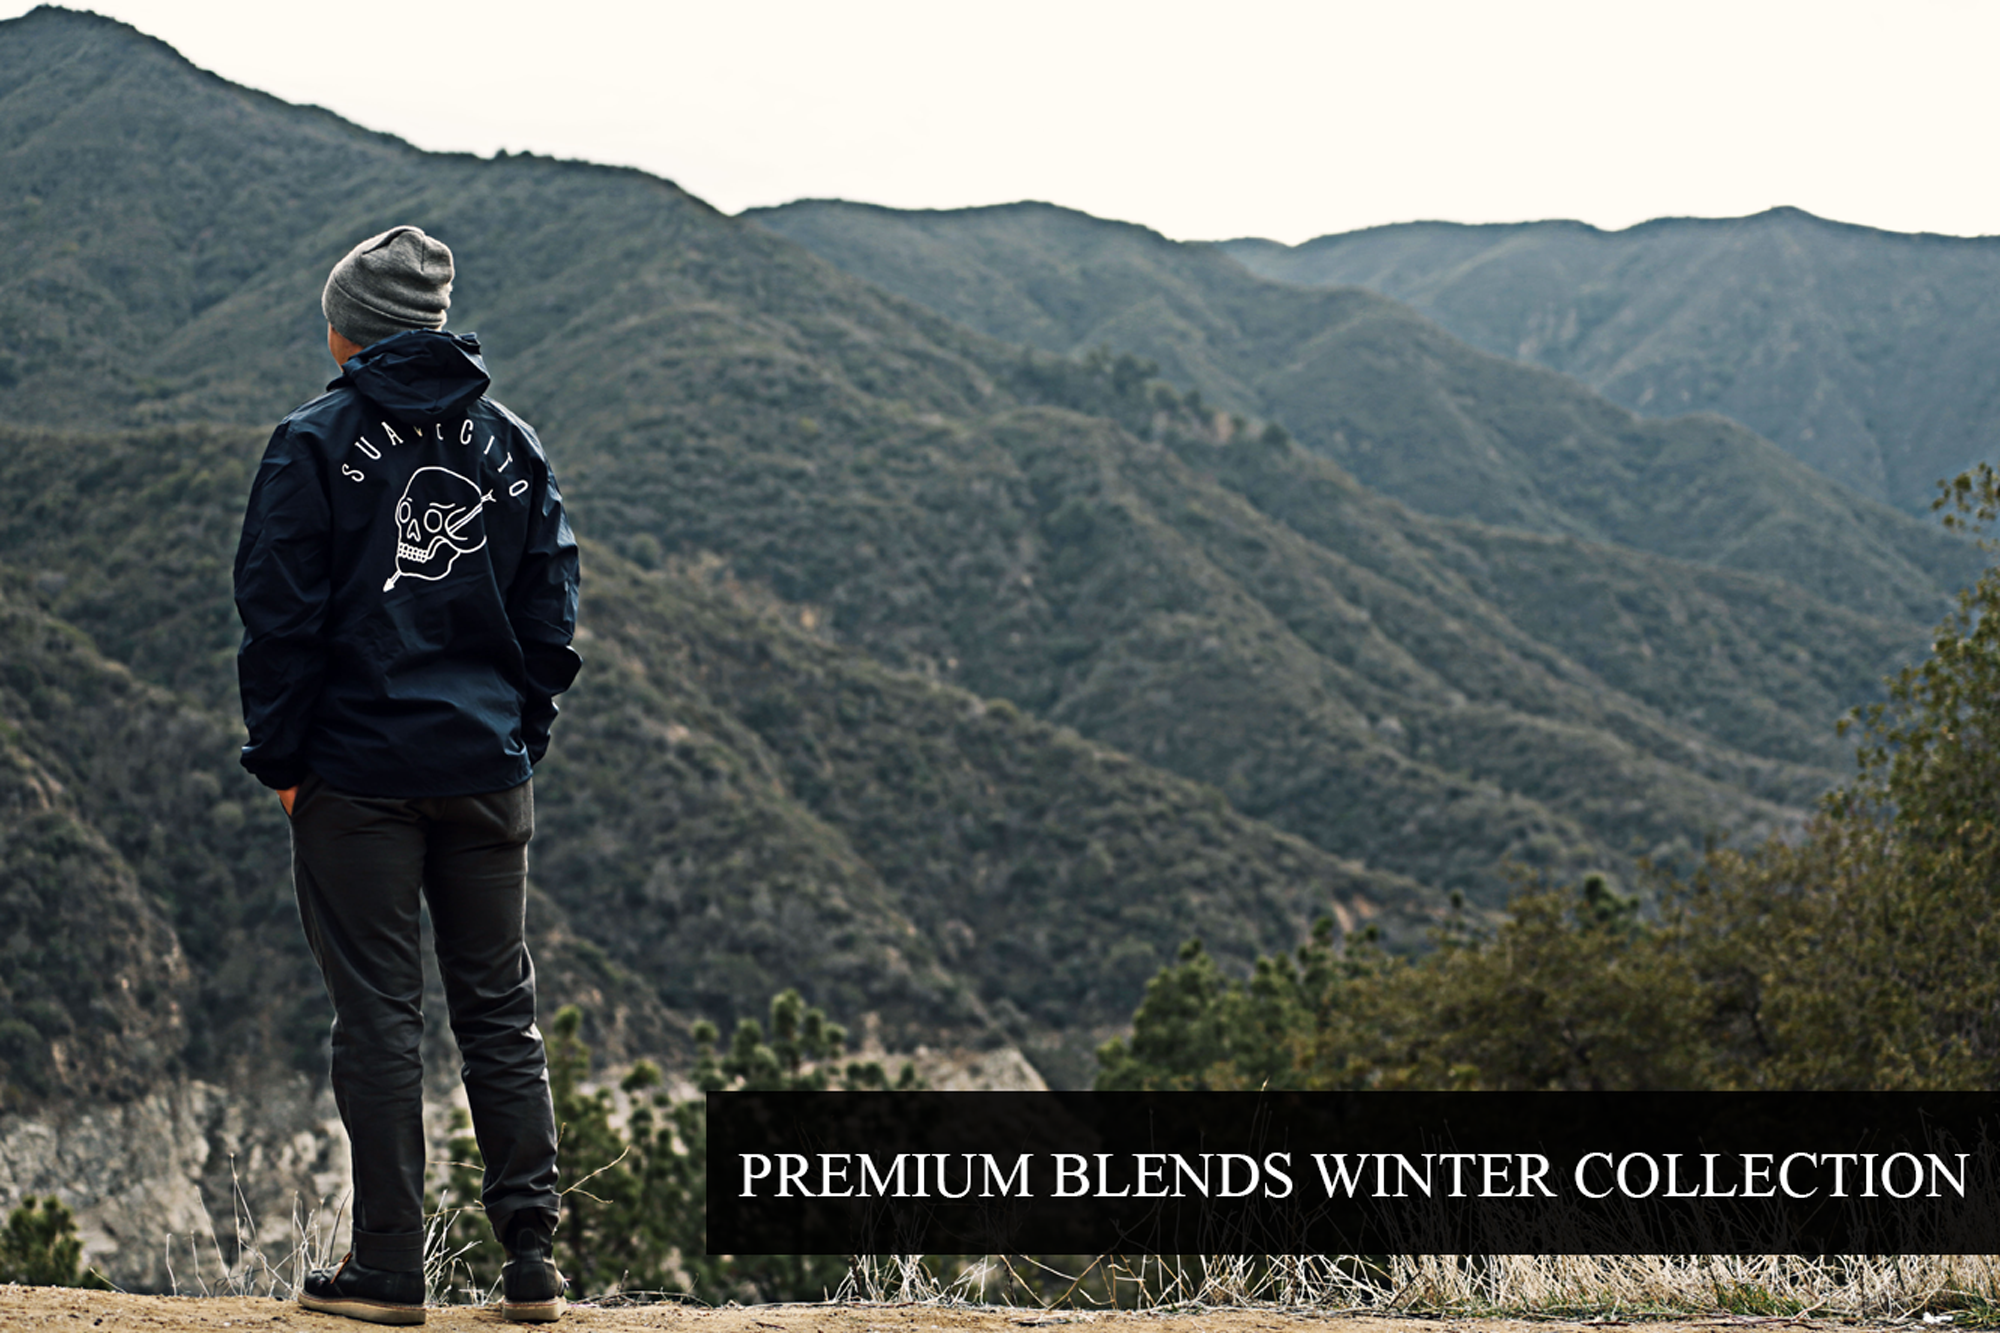 Suavecito Premium Blends Winter Collection